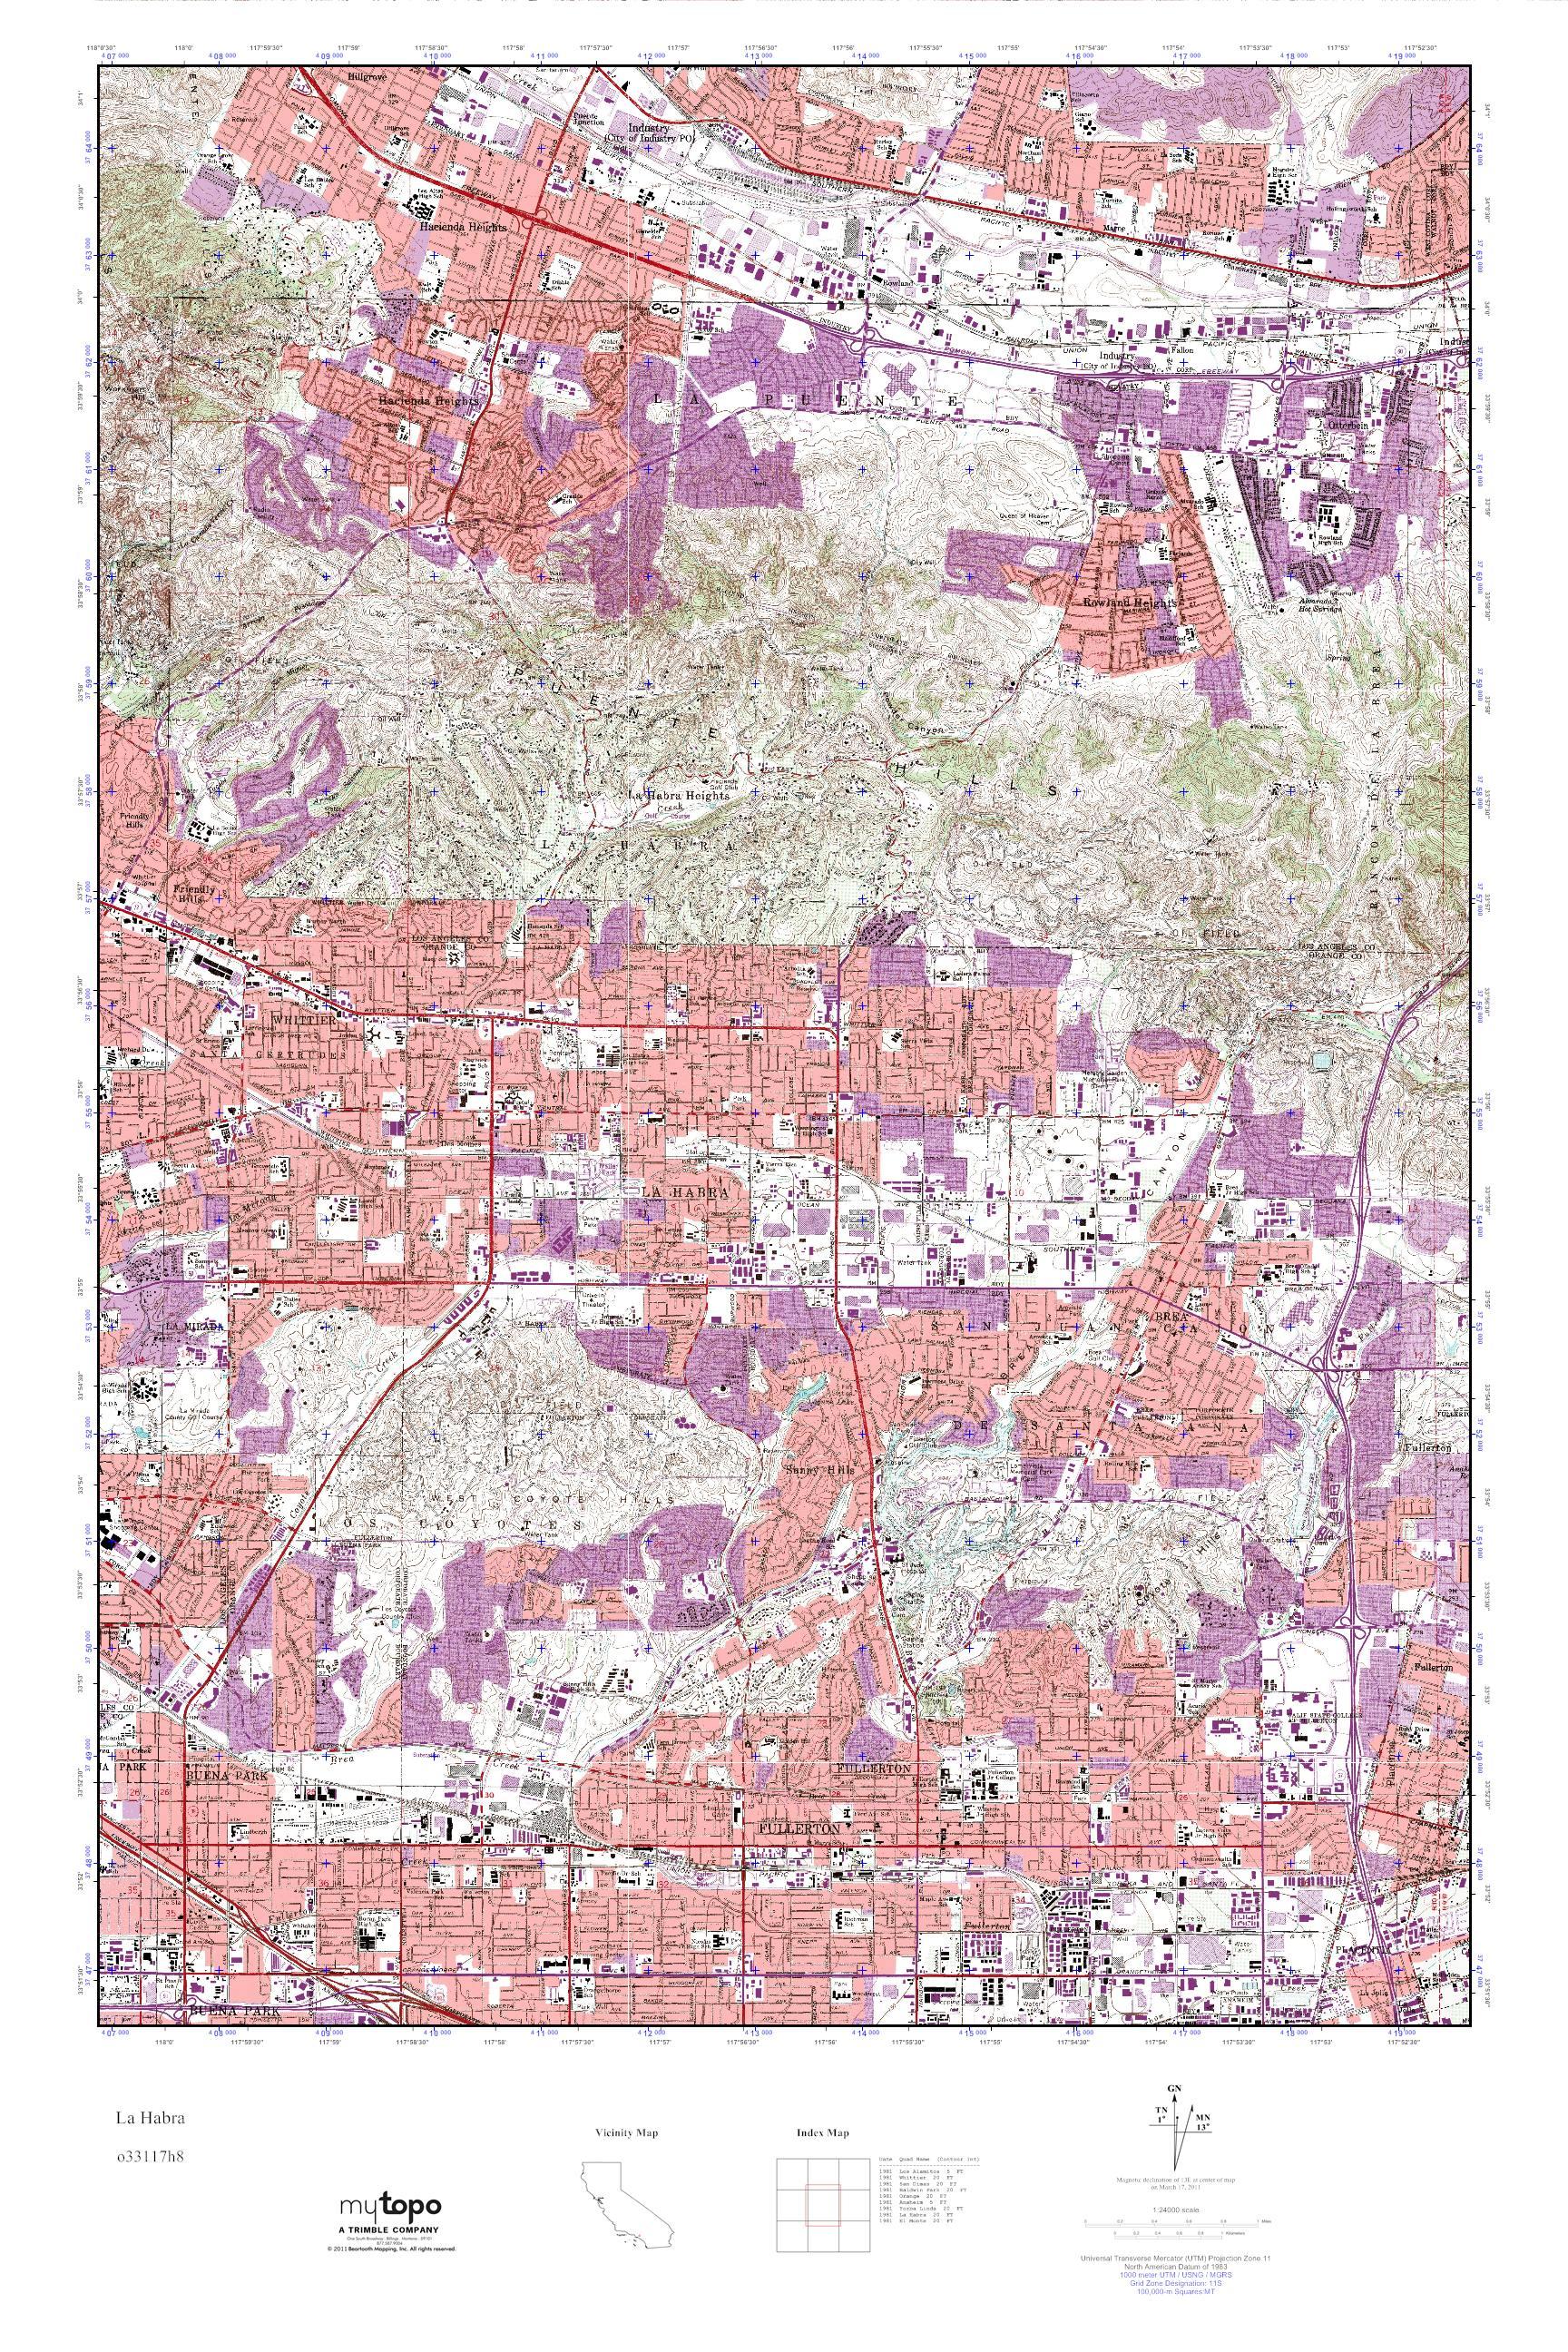 Mytopo La Habra California Usgs Quad Topo Map